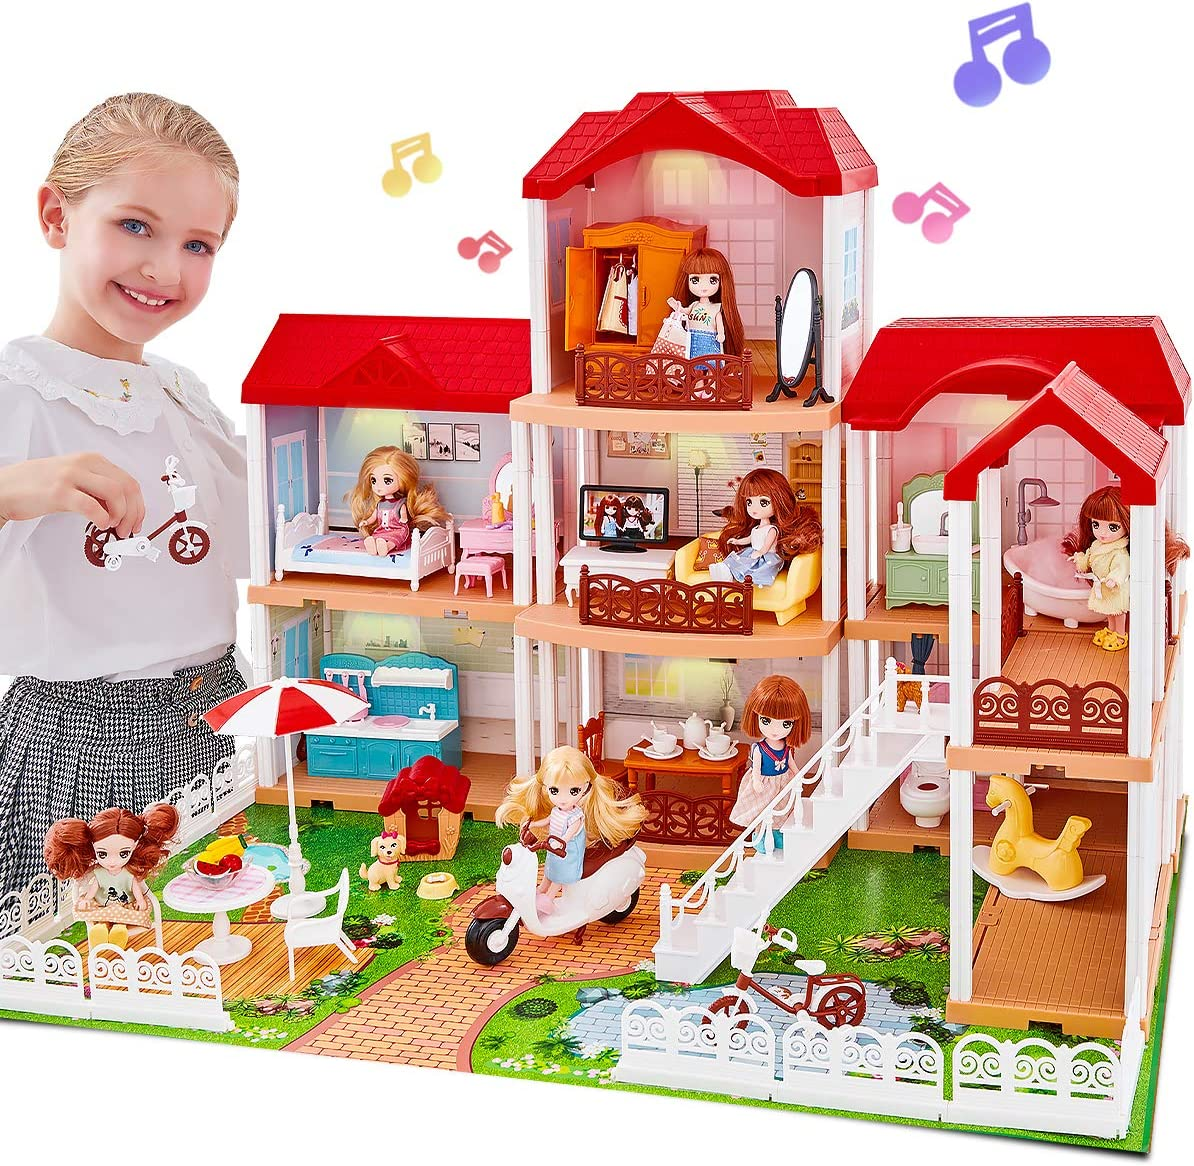 UNIH Doll House Dream House with 2 Dolls, Dollhouse Accessories and Furniture House Playset Gift for Toddler Girls Kids Age 3 4 5 Year Old